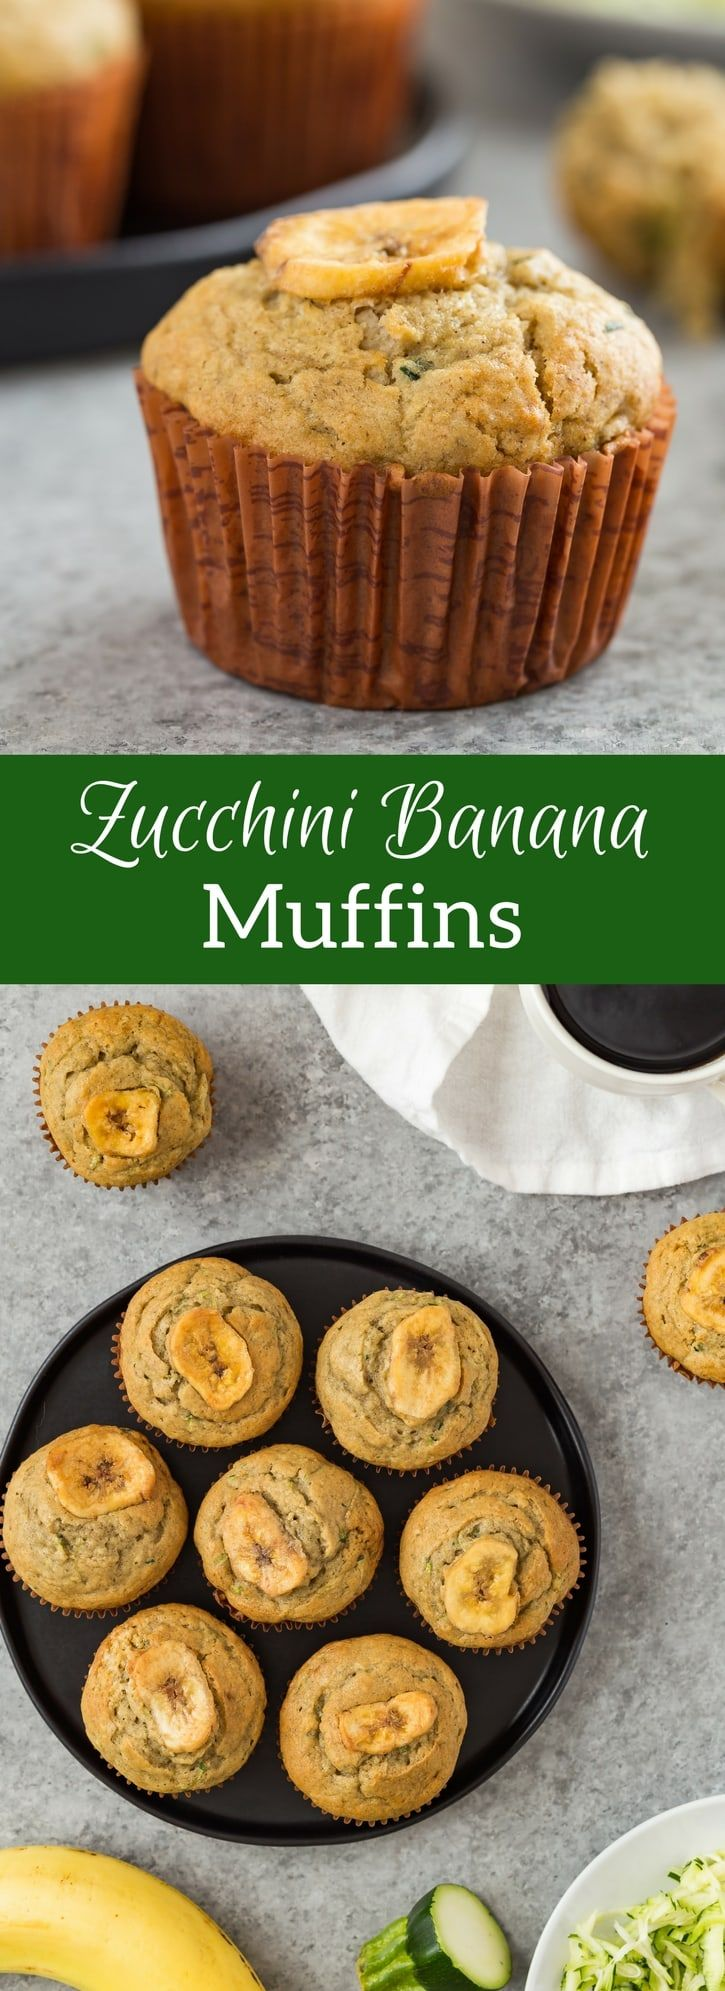 Here's a tender, moist recipe for zucchini banana muffins! Brown sugar, cinnamon, and vanilla add so much flavor. Recipe on bakedbyanintrovert.com via @introvertbaker